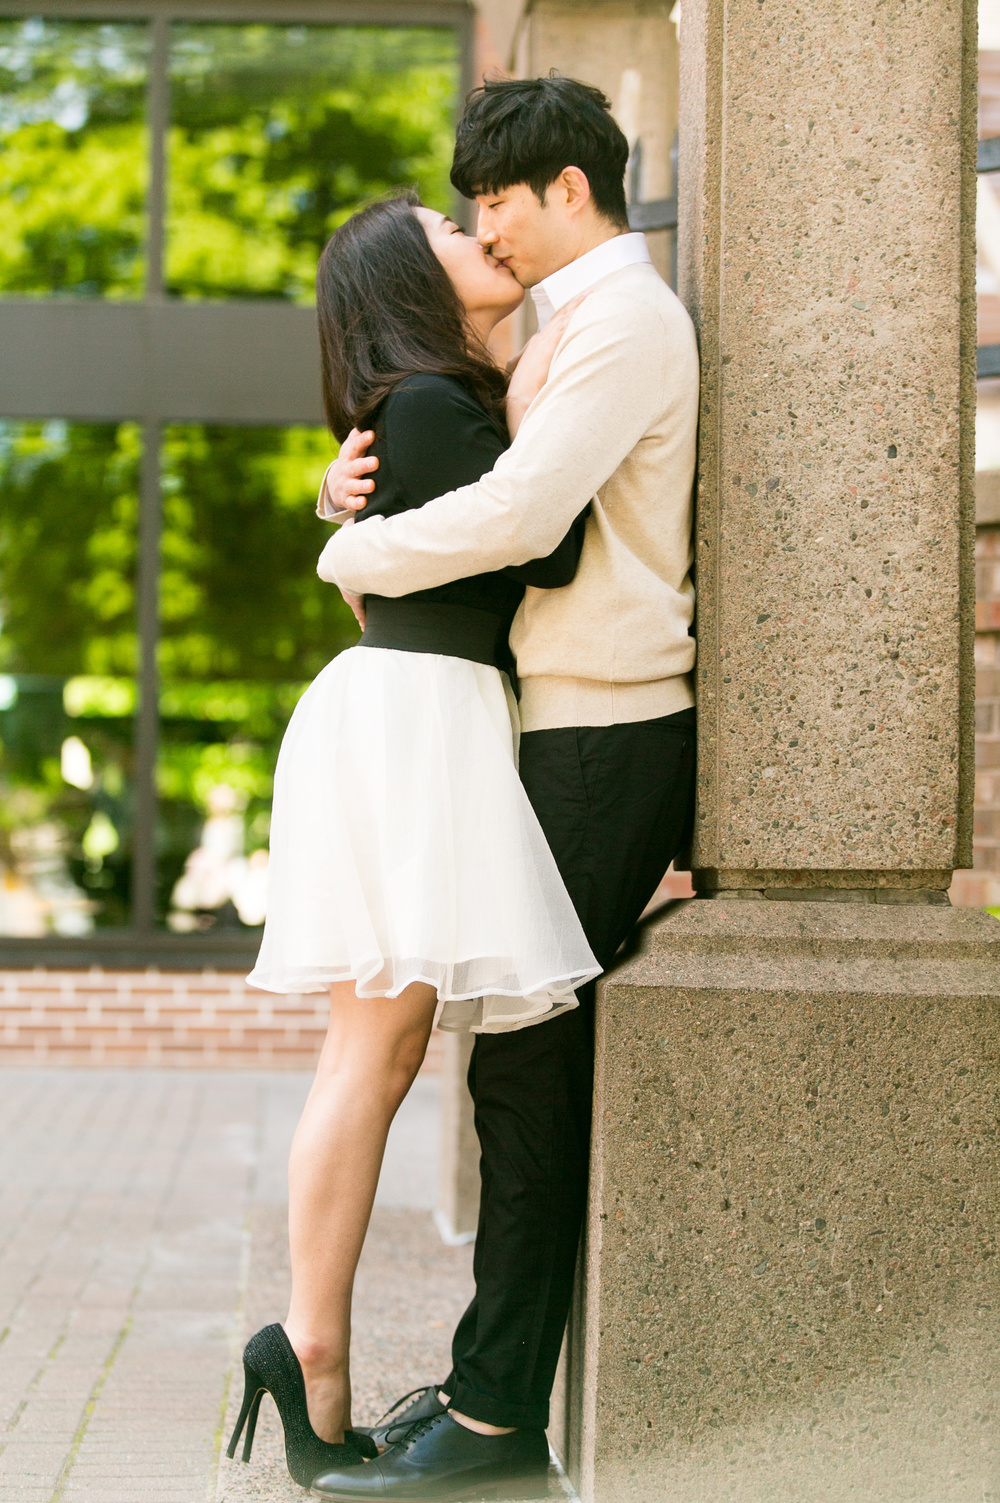 361-halifax-engagement-photography.jpg